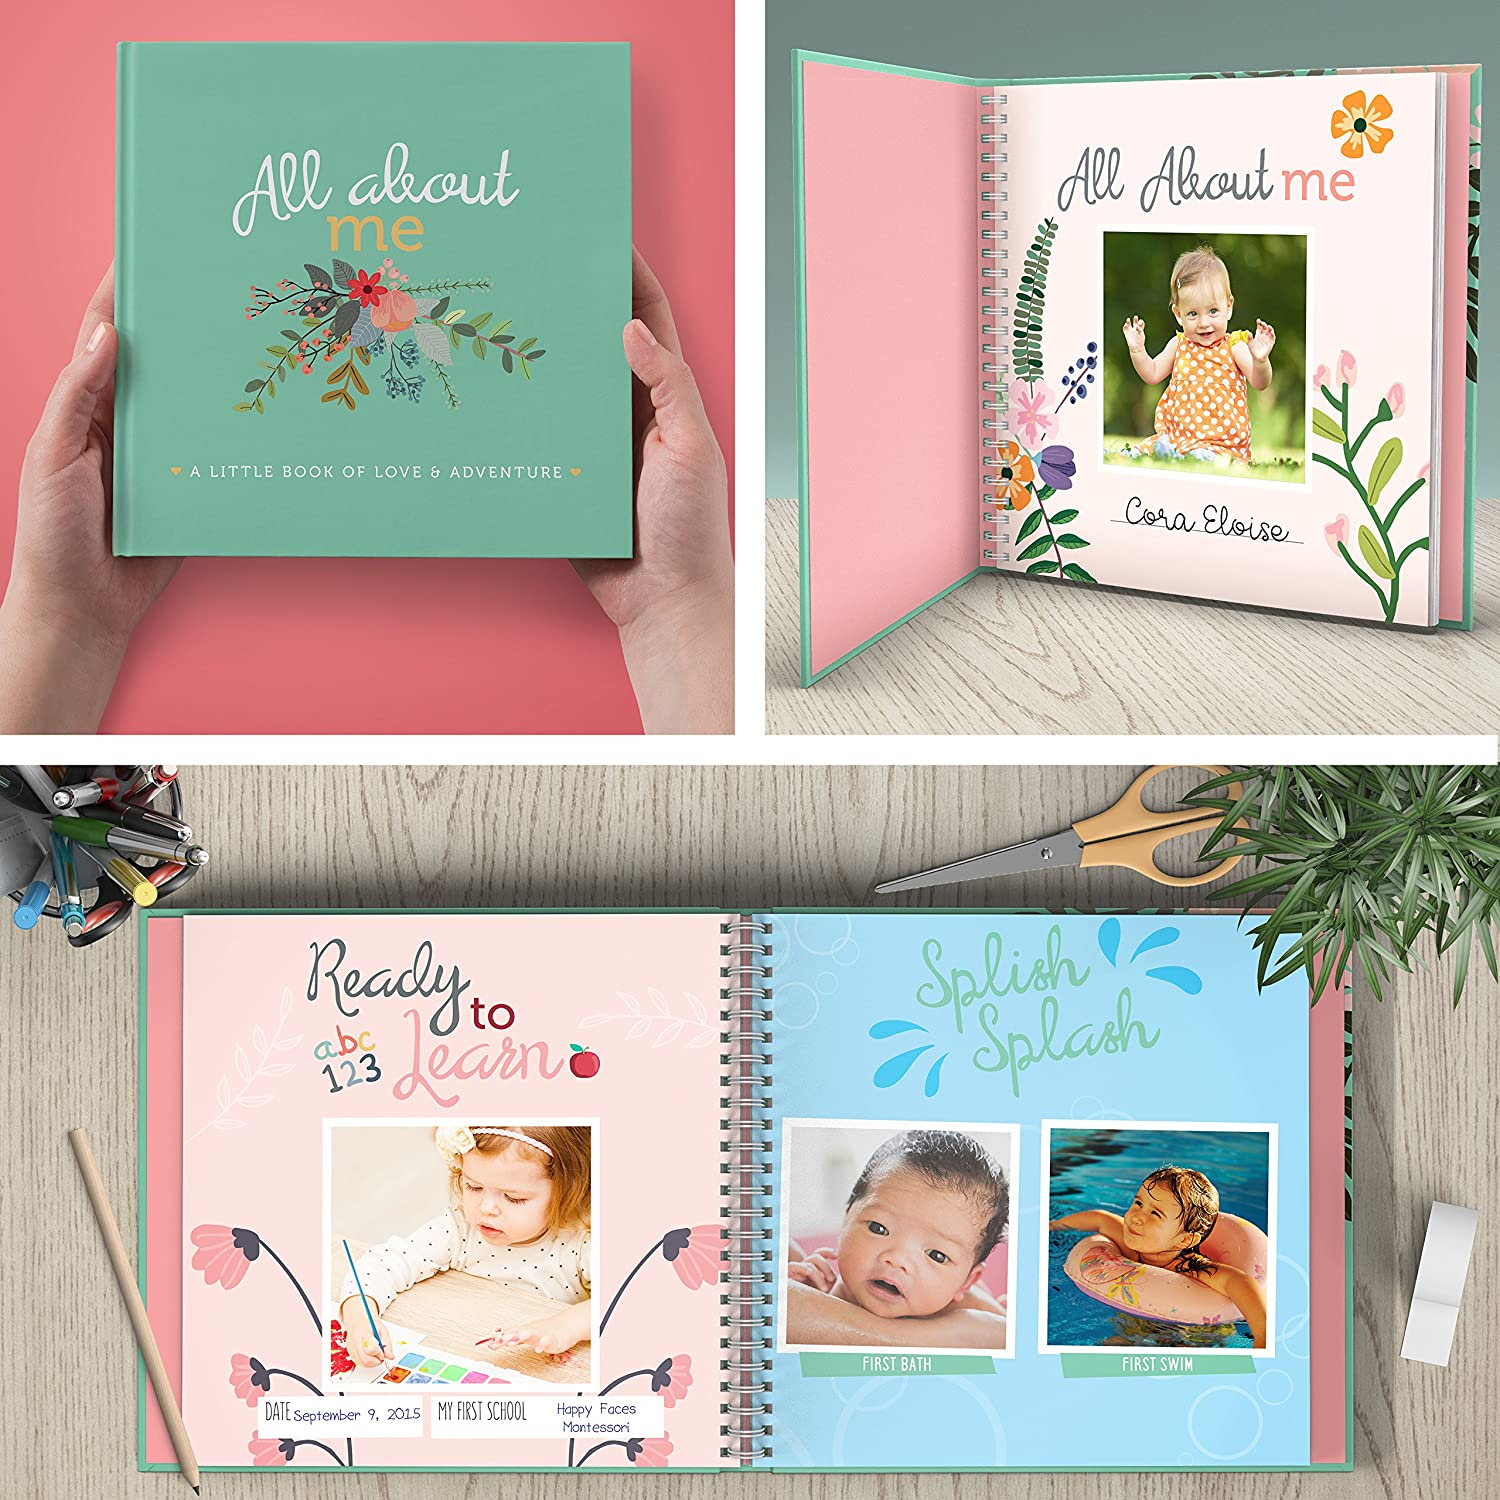 Amazon first year baby memory book baby journal modern baby amazon first year baby memory book baby journal modern baby shower gift keepsake for new parents to record photos milestones solutioingenieria Gallery